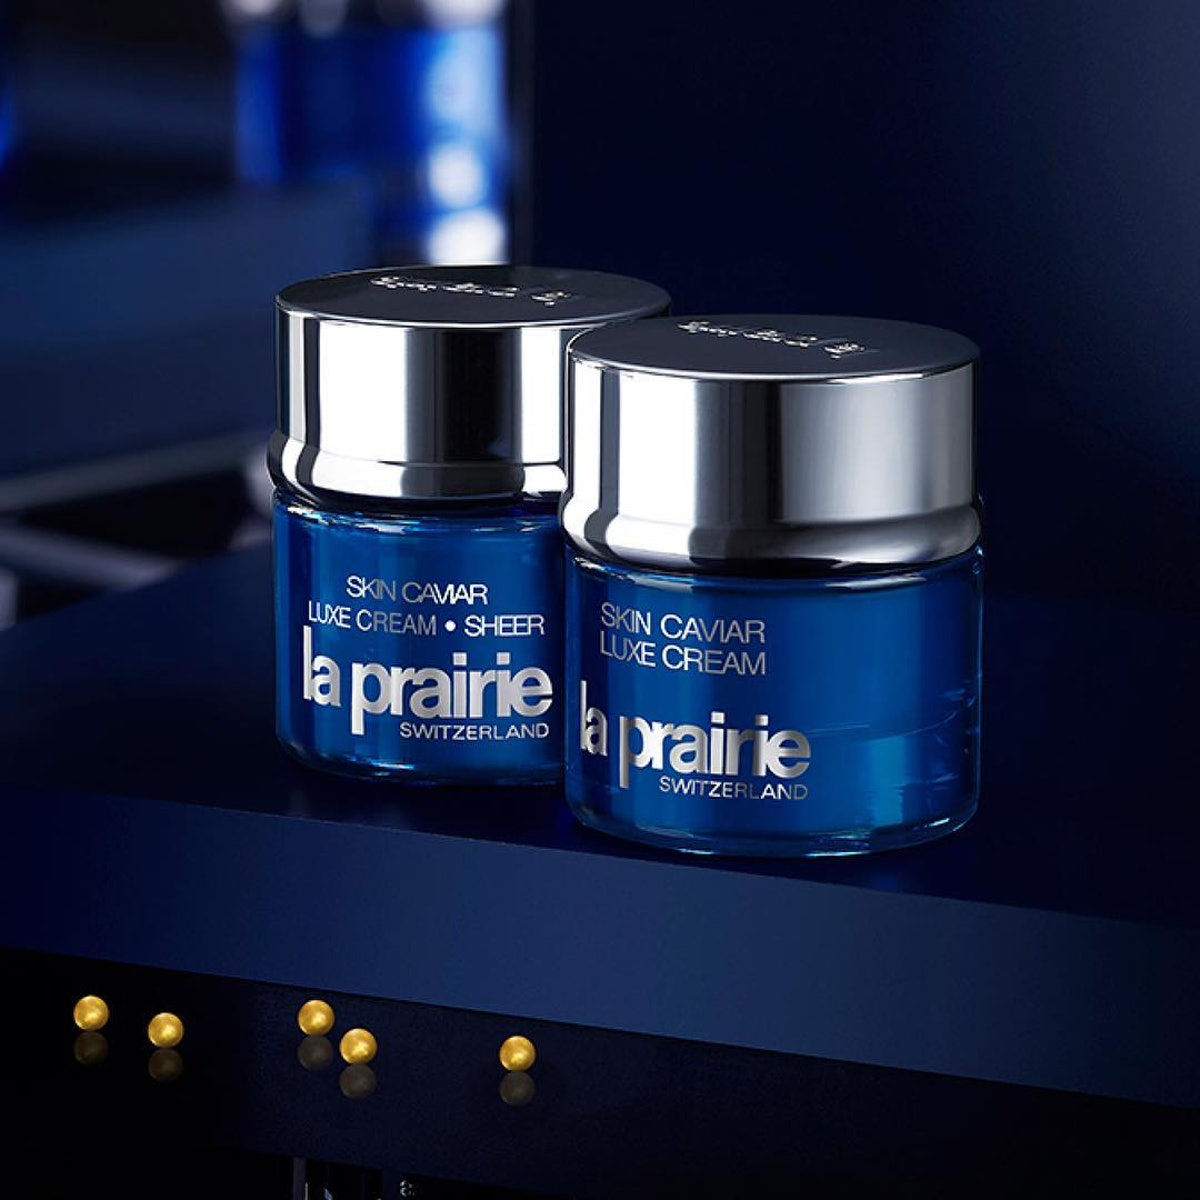 The Best La Prairie Products That Dermatologists Splurge On, Too